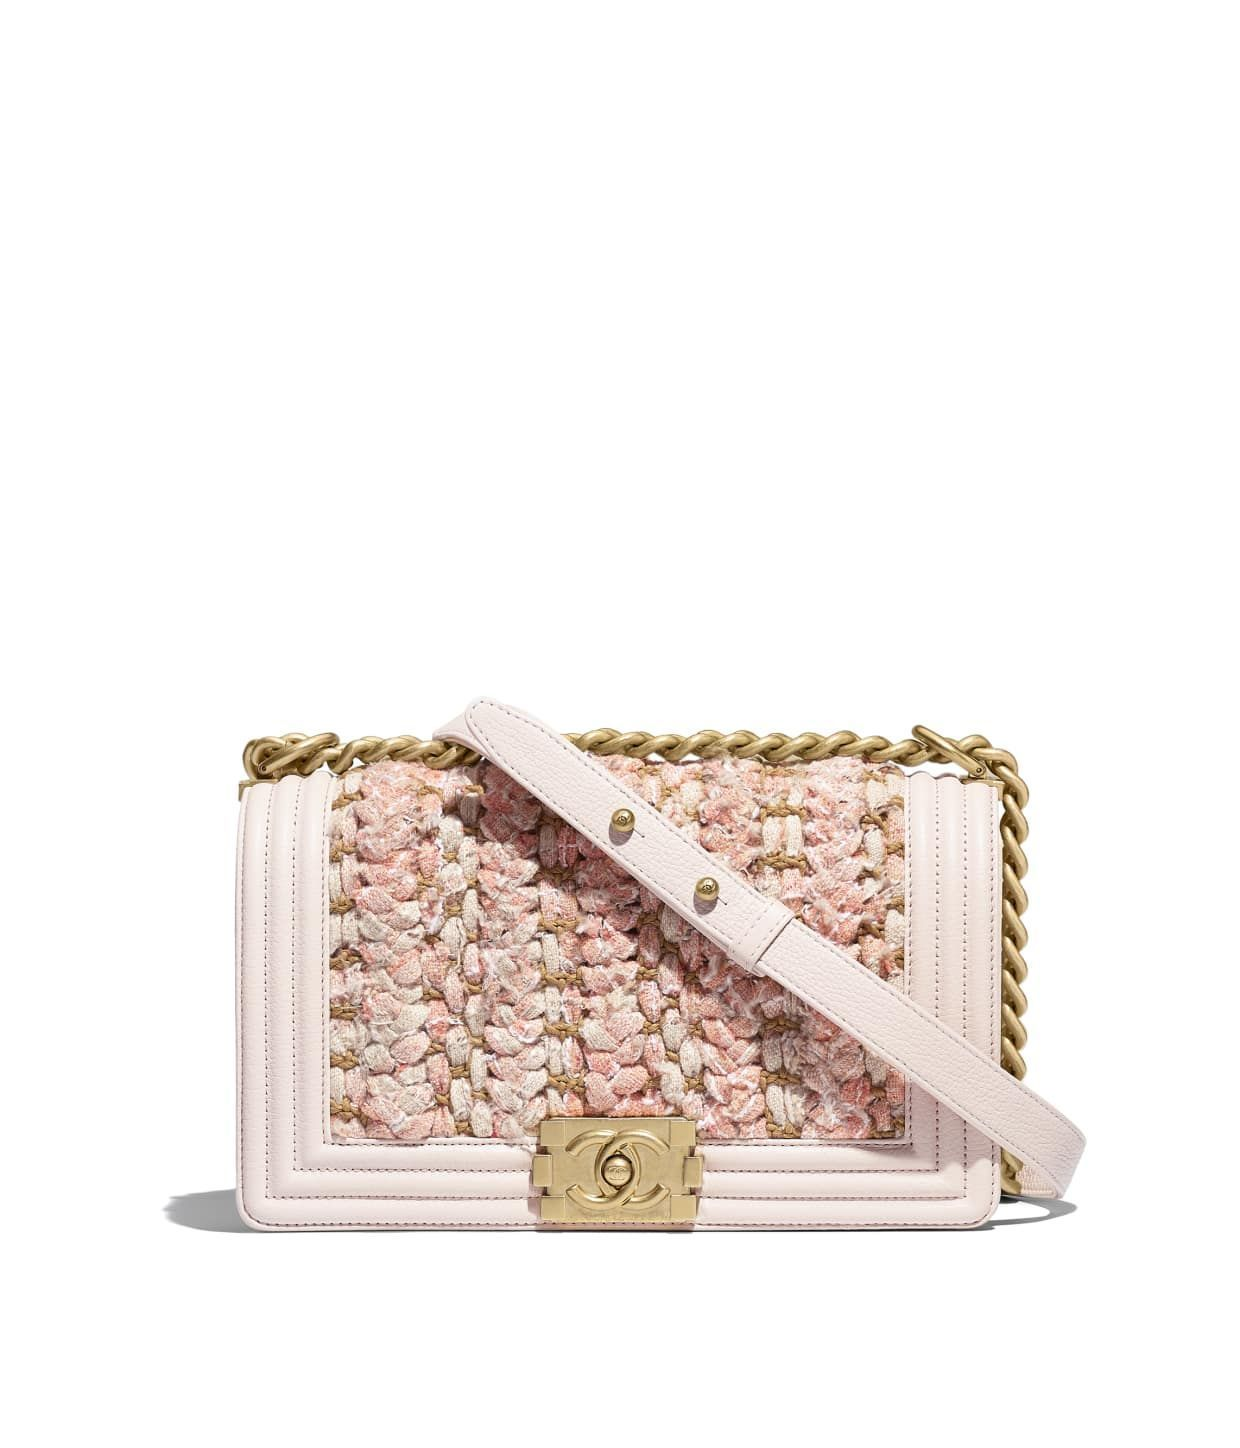 7eec1fcf17f7 Discover the CHANEL Braided Tweed, Calfskin & Gold-Tone Metal Beige & Pink  BOY CHANEL Handbag, and explore the artistry and craftsmanship of the House  of ...